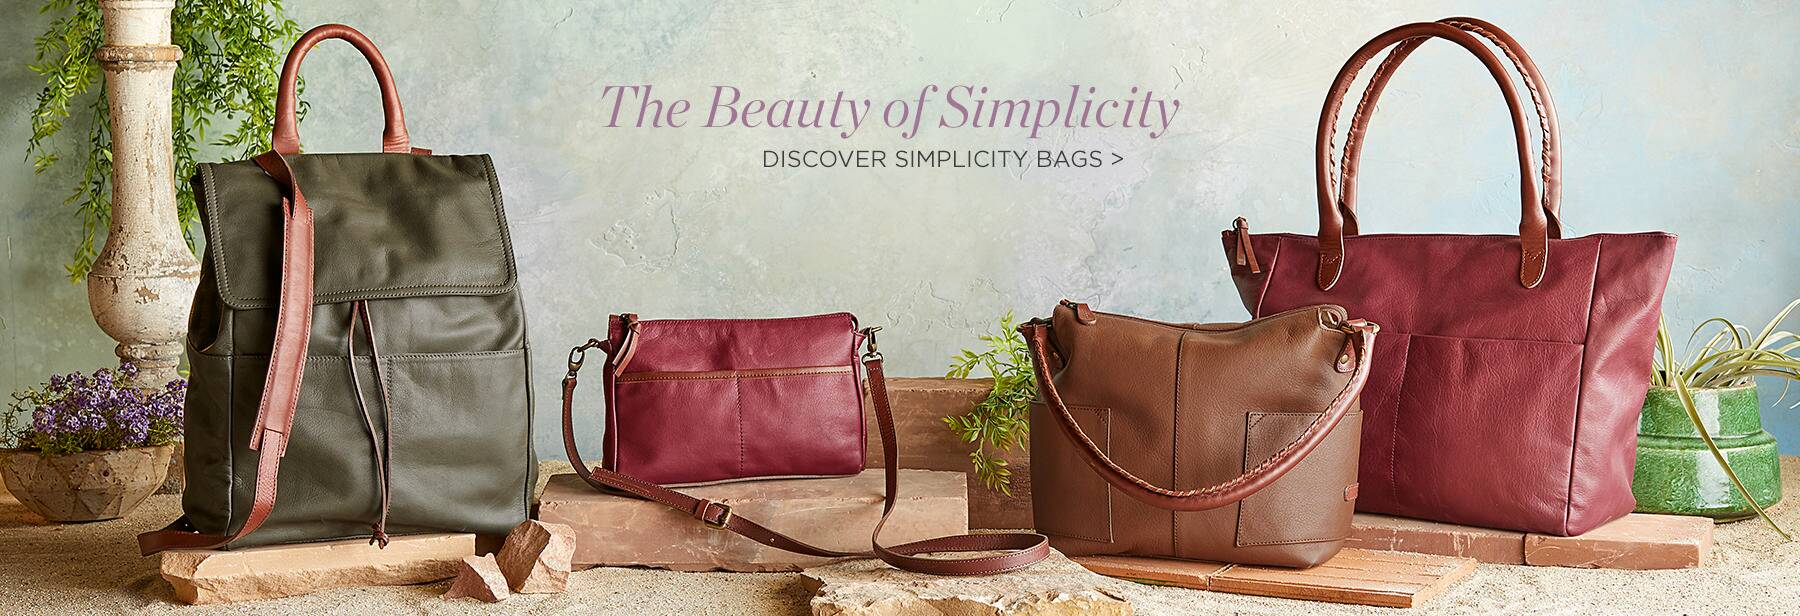 Discover Simplicity Bags